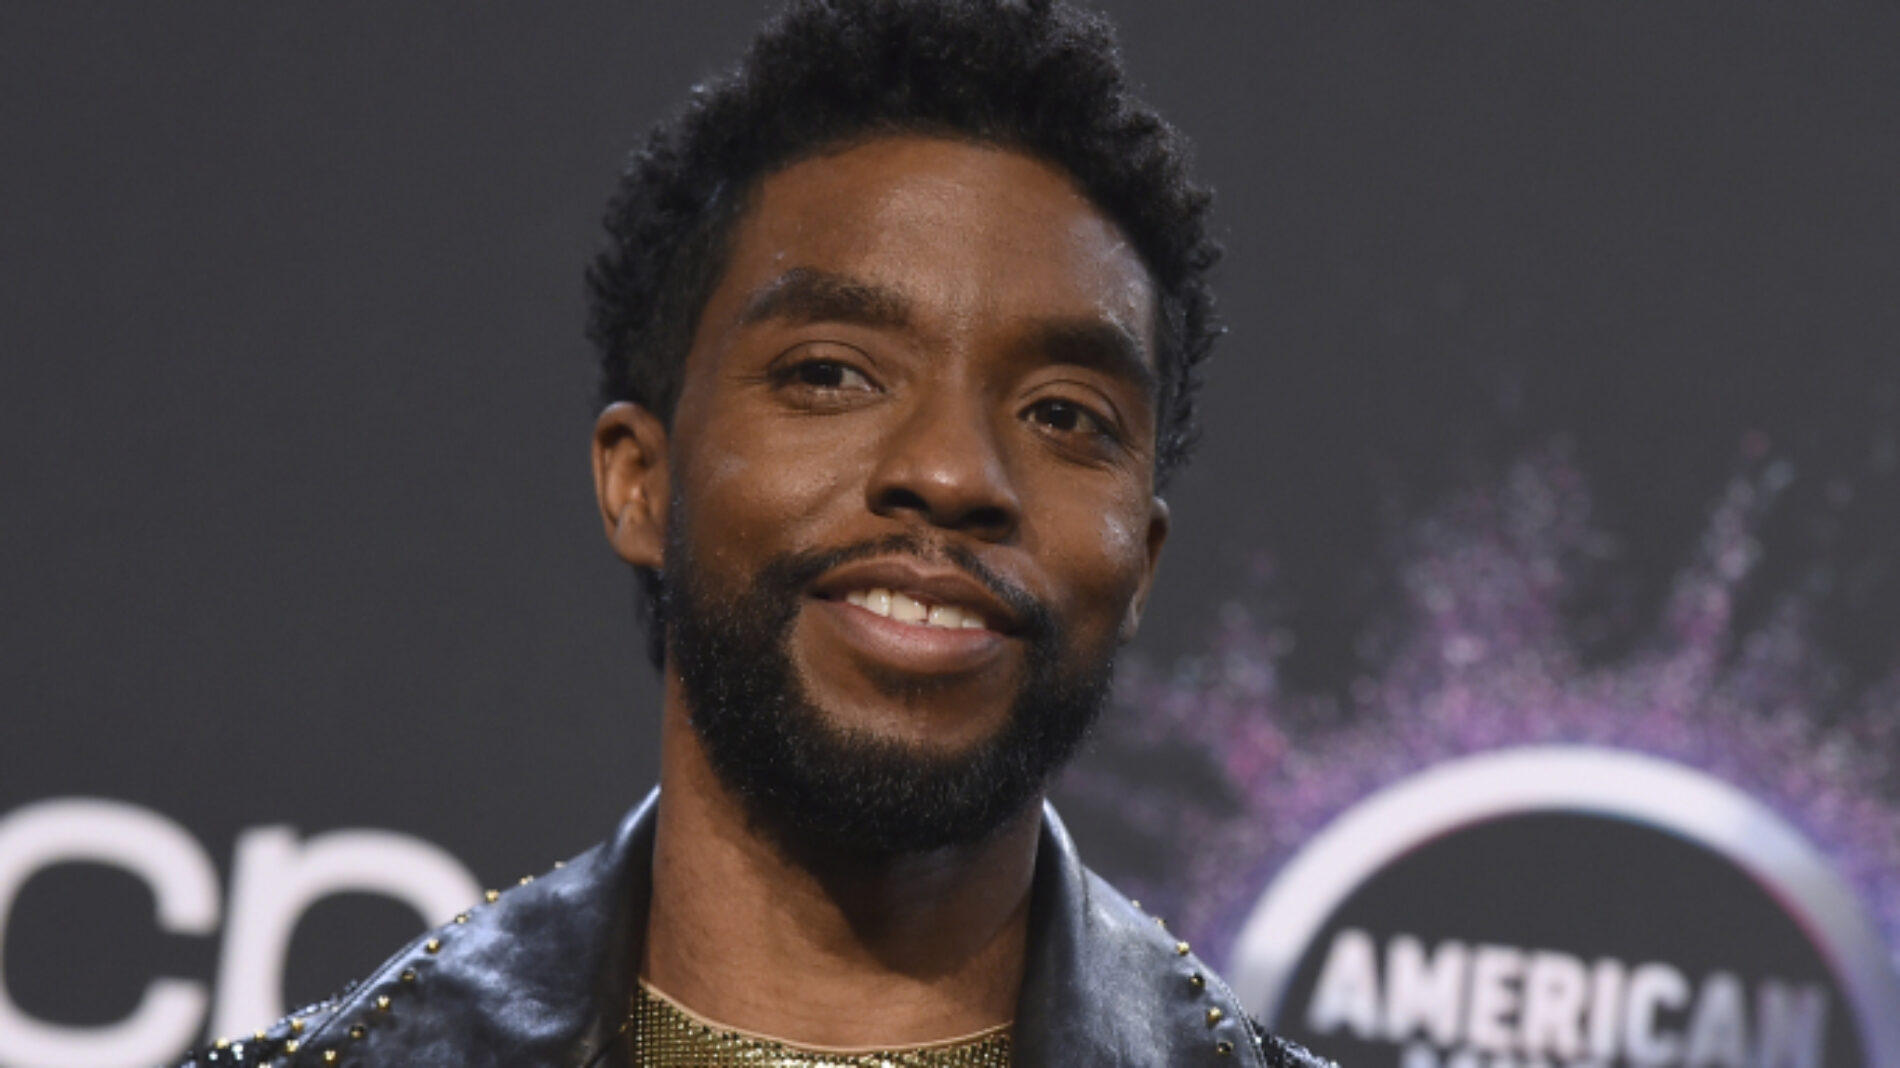 'Black Panther' Star Chadwick Boseman Dies, Succumbs To Cancer At 43